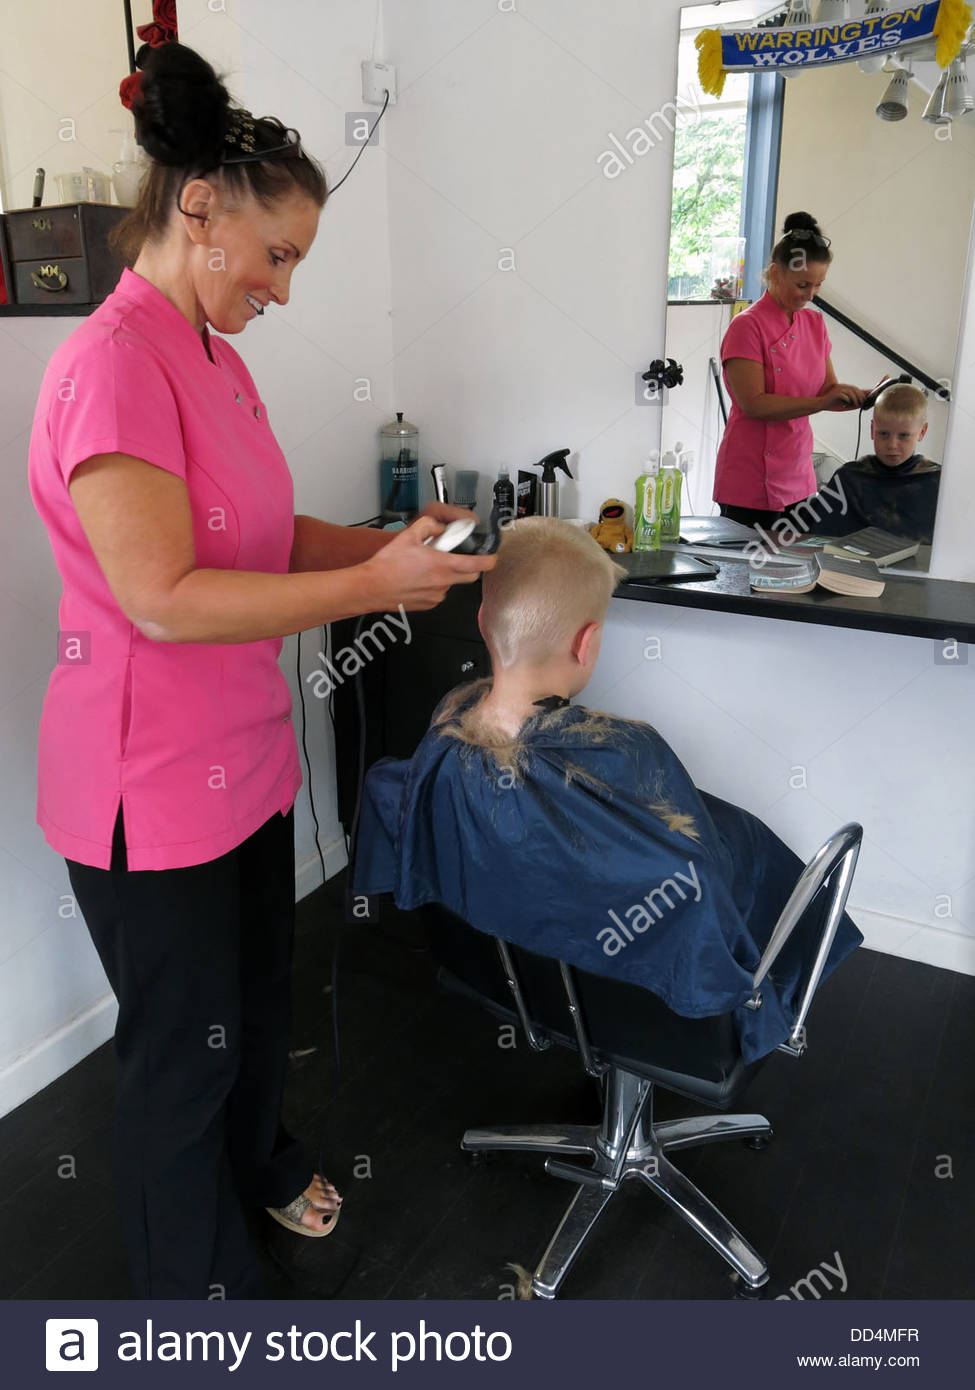 Young boy having a haircut at a traditional barber shop, Latchford, , Warrington, Cheshire, North West England, - Stock Image